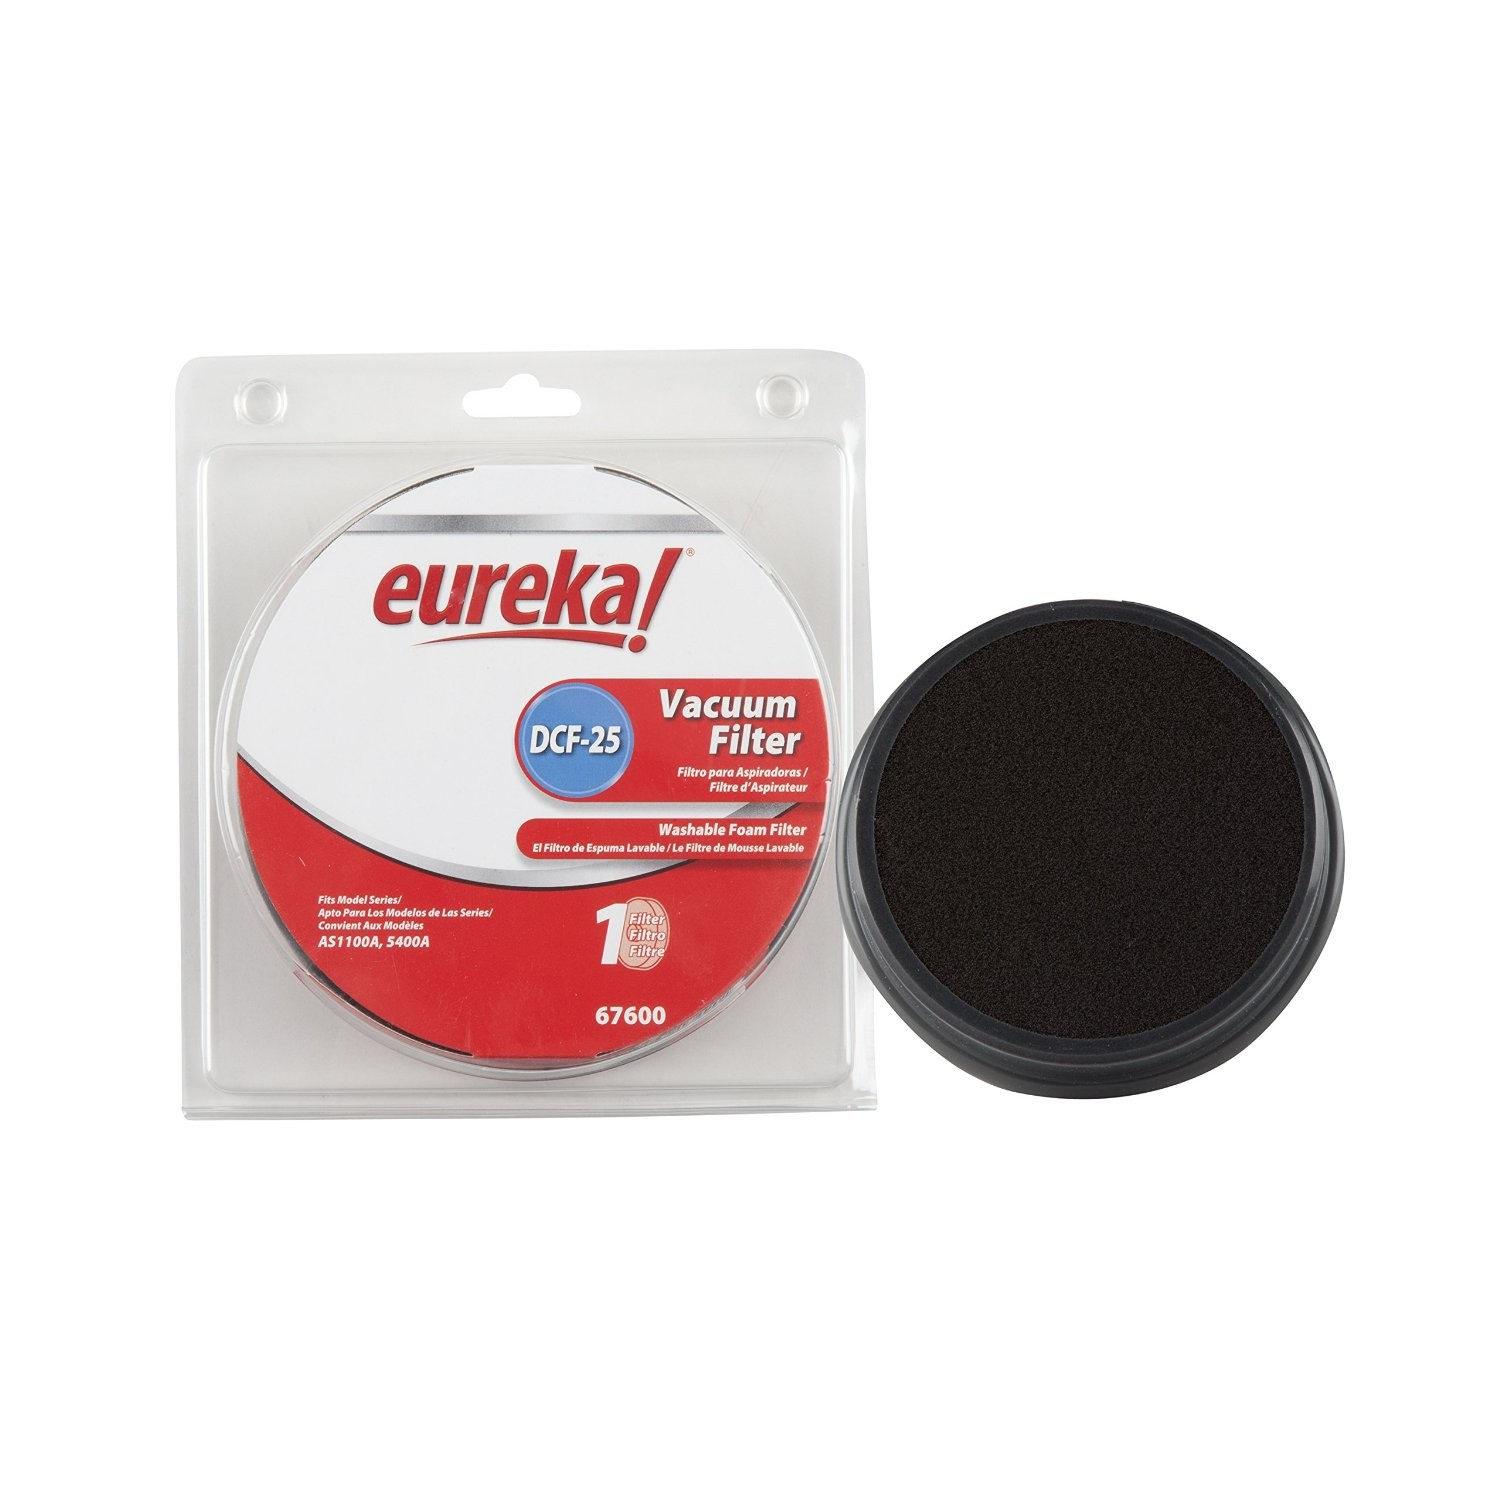 Genuine Eureka DCF-25 Vacuum Filter